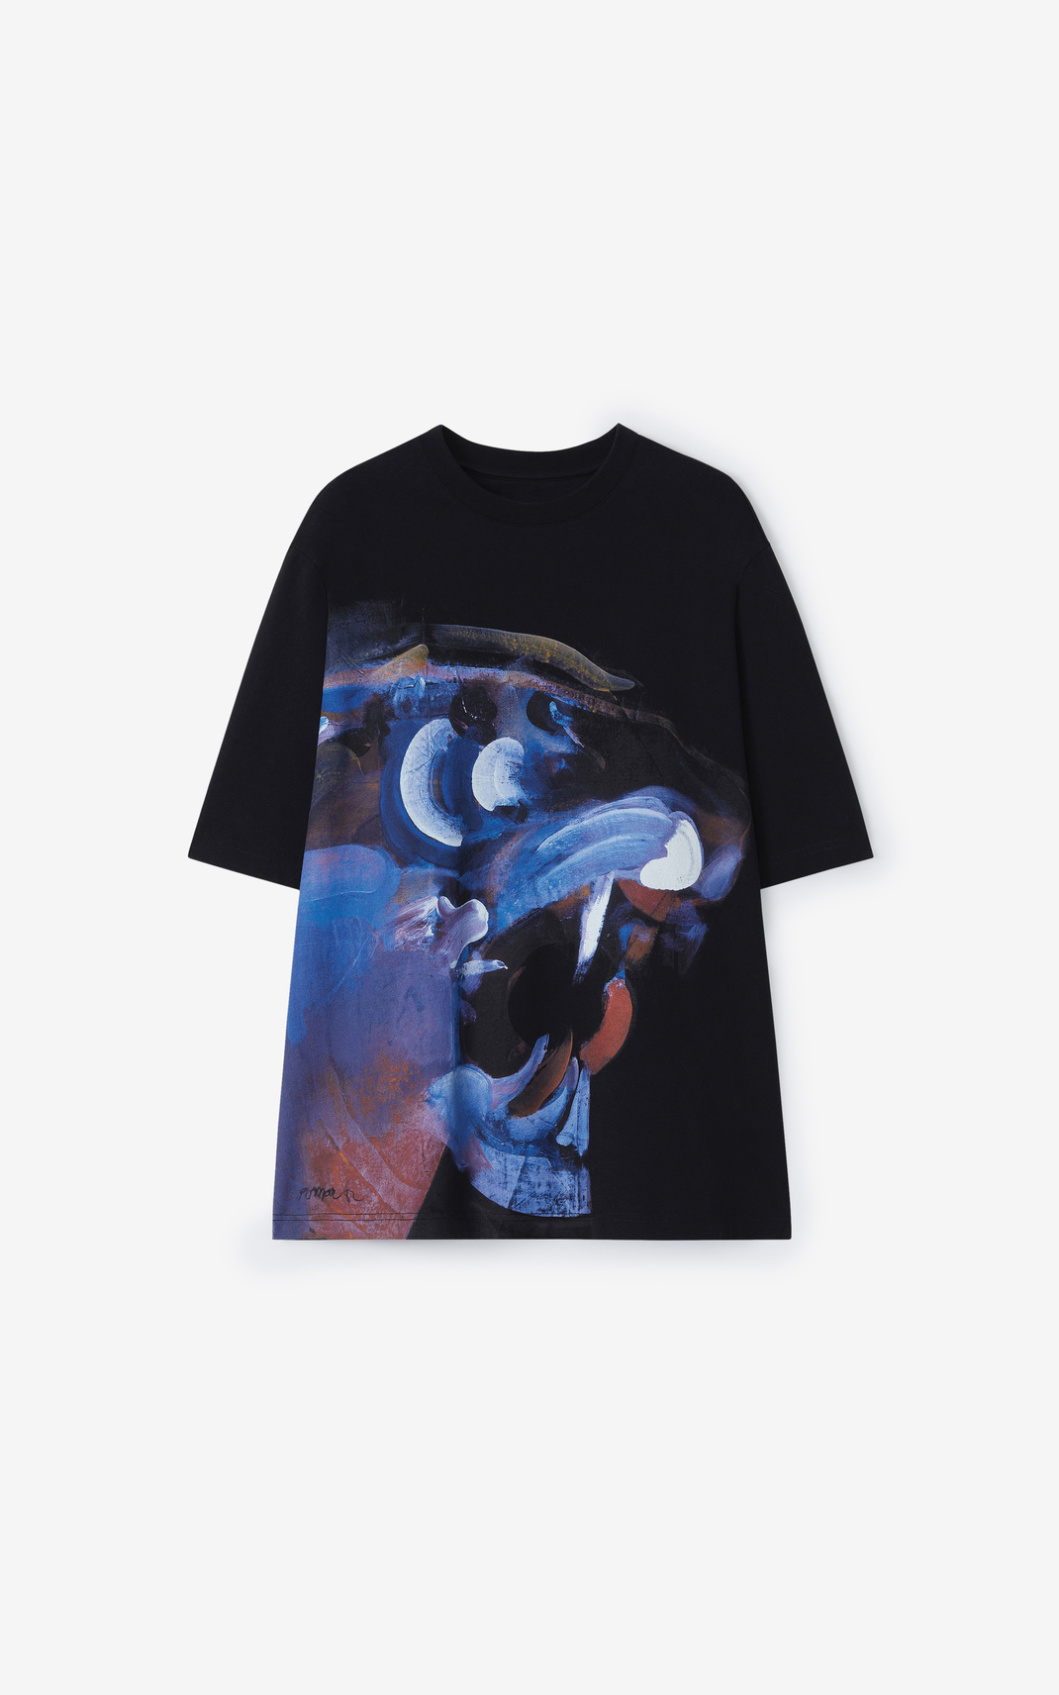 KENZO T-Shirt avec illustration de Jùlio Pomar